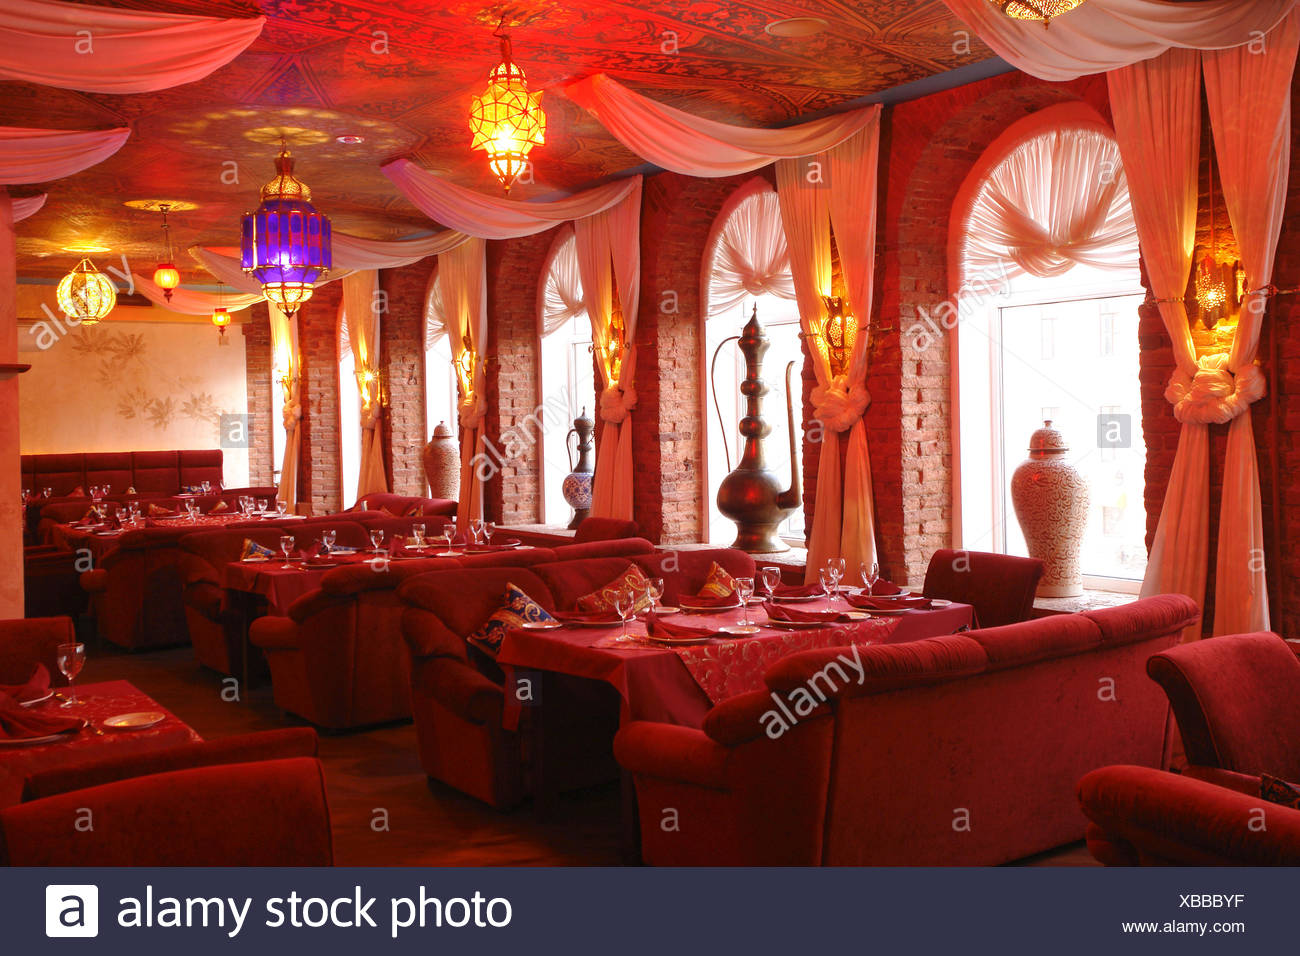 Interior Of A Restaurant In Red Color Stock Photo Alamy